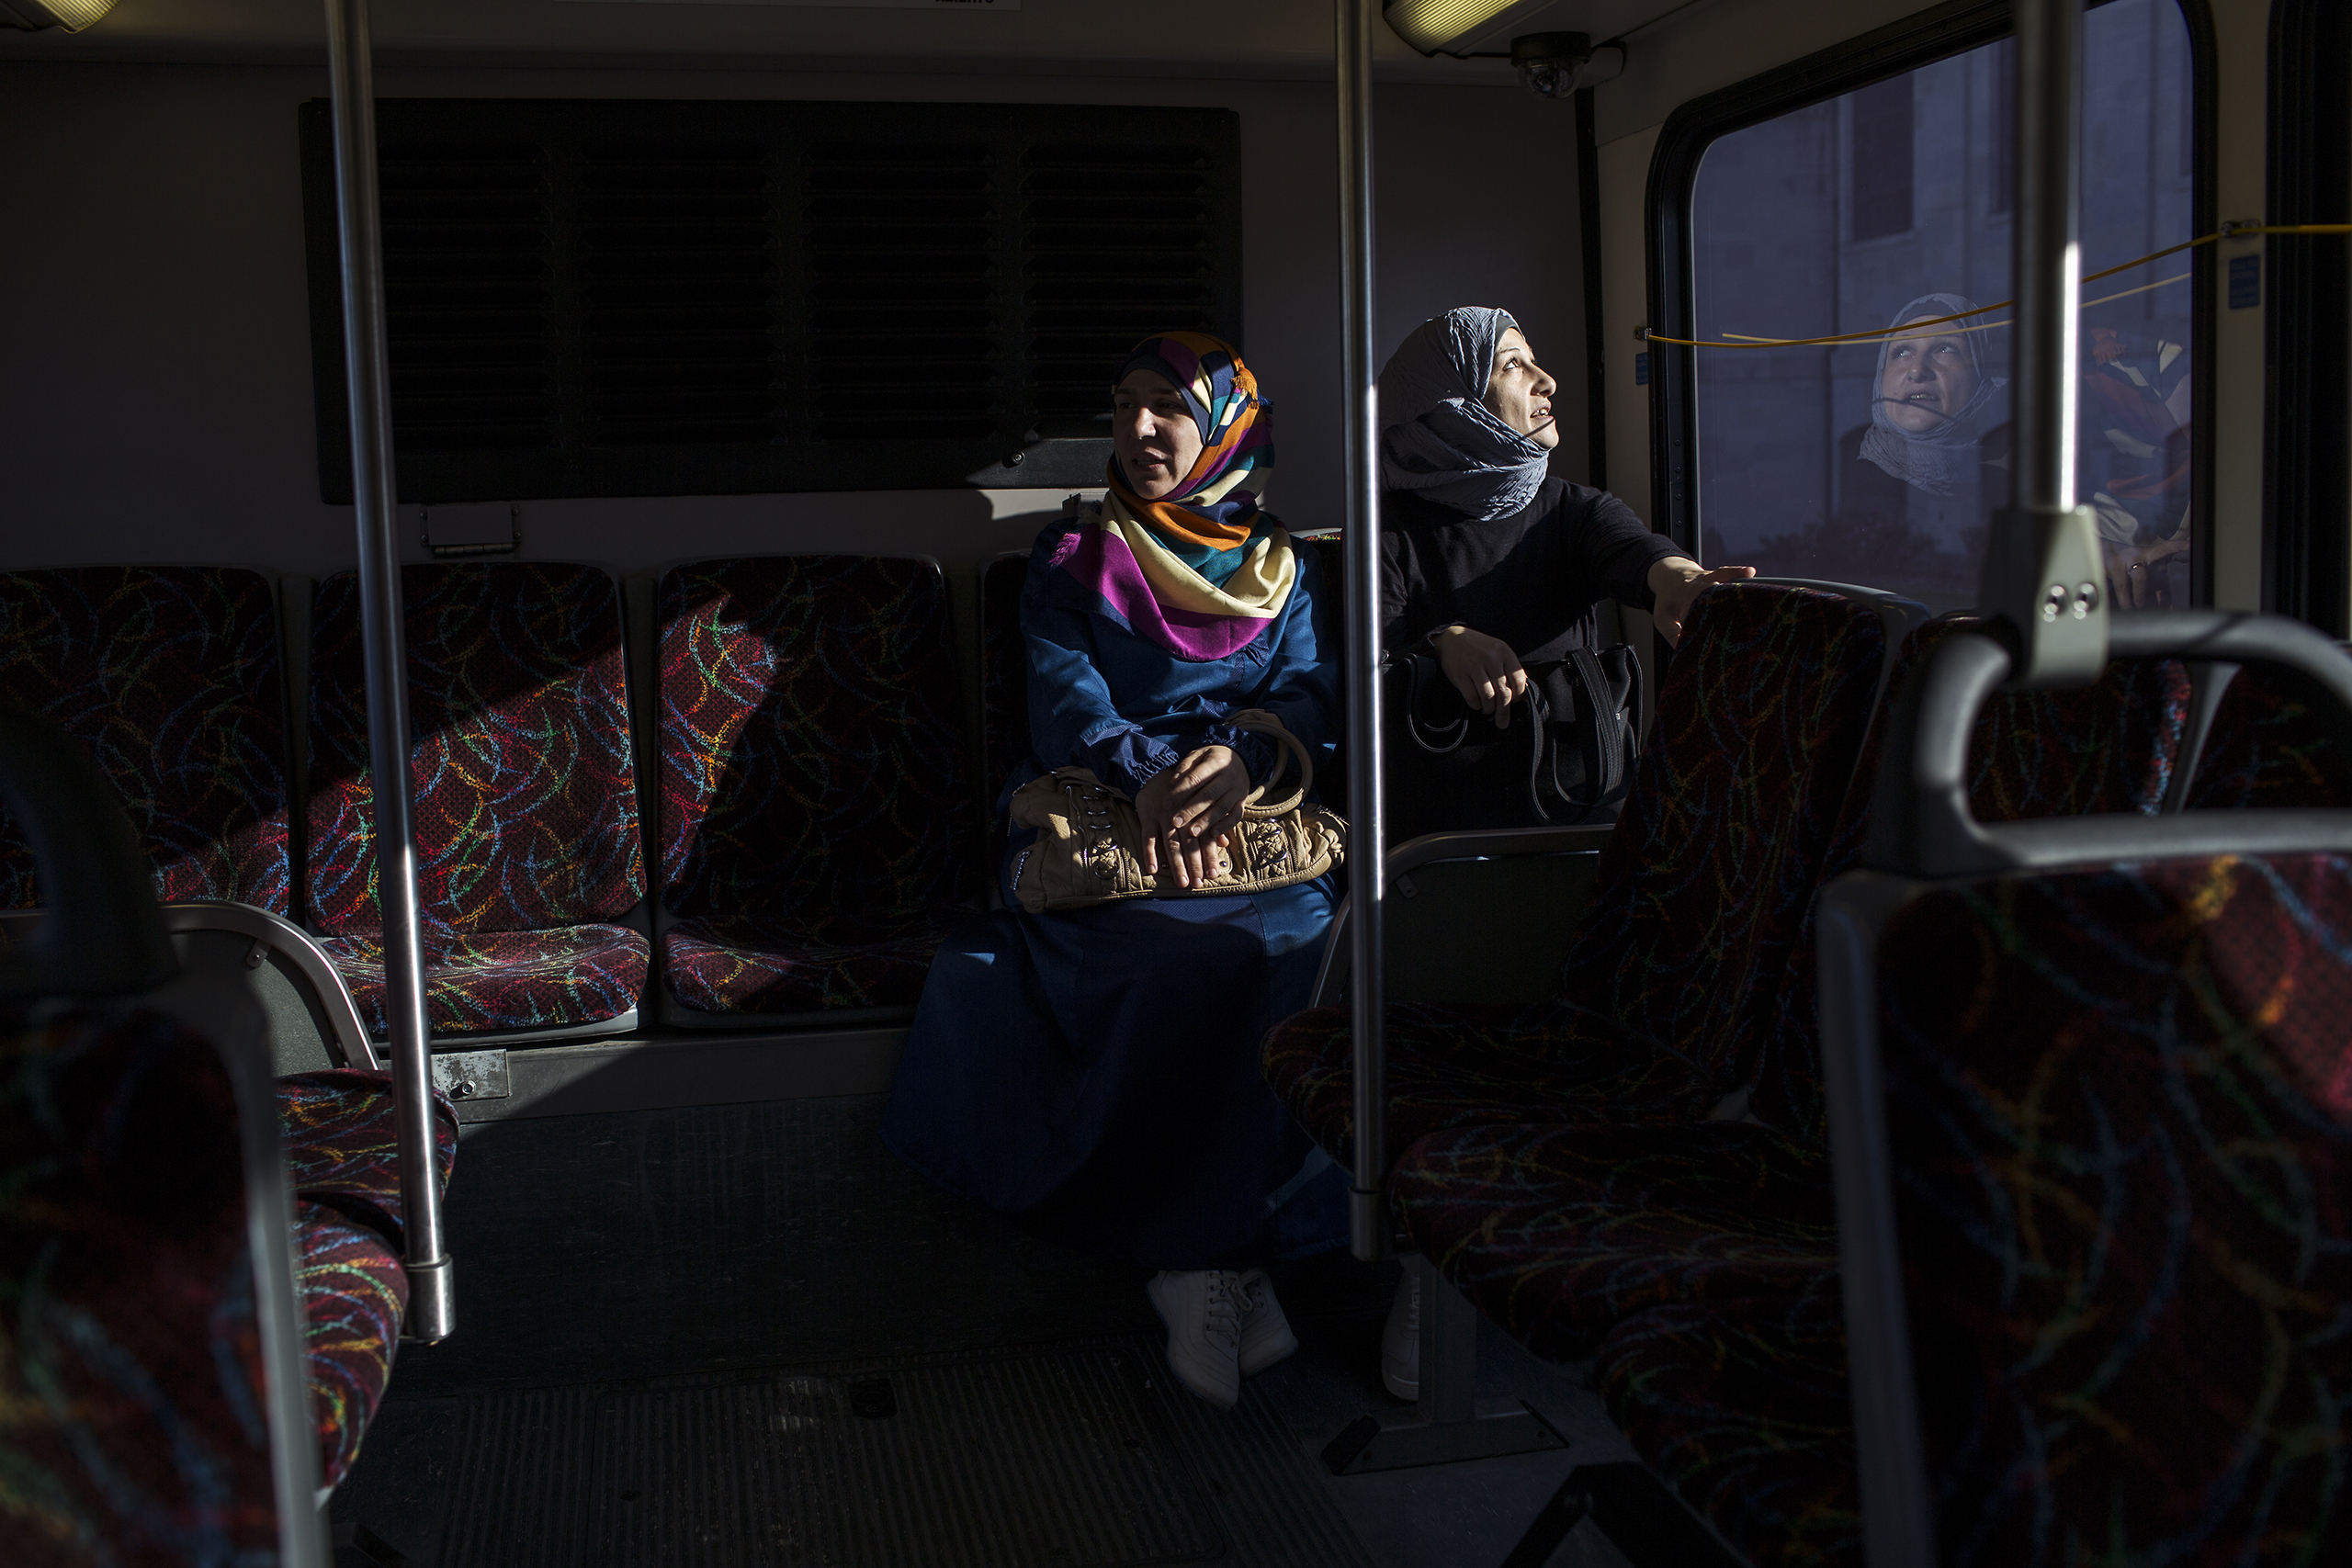 Ghazweh and her friend, Mumena El Ali, ride the bus while on their way to ESL class at the Des Moines Area Community College.